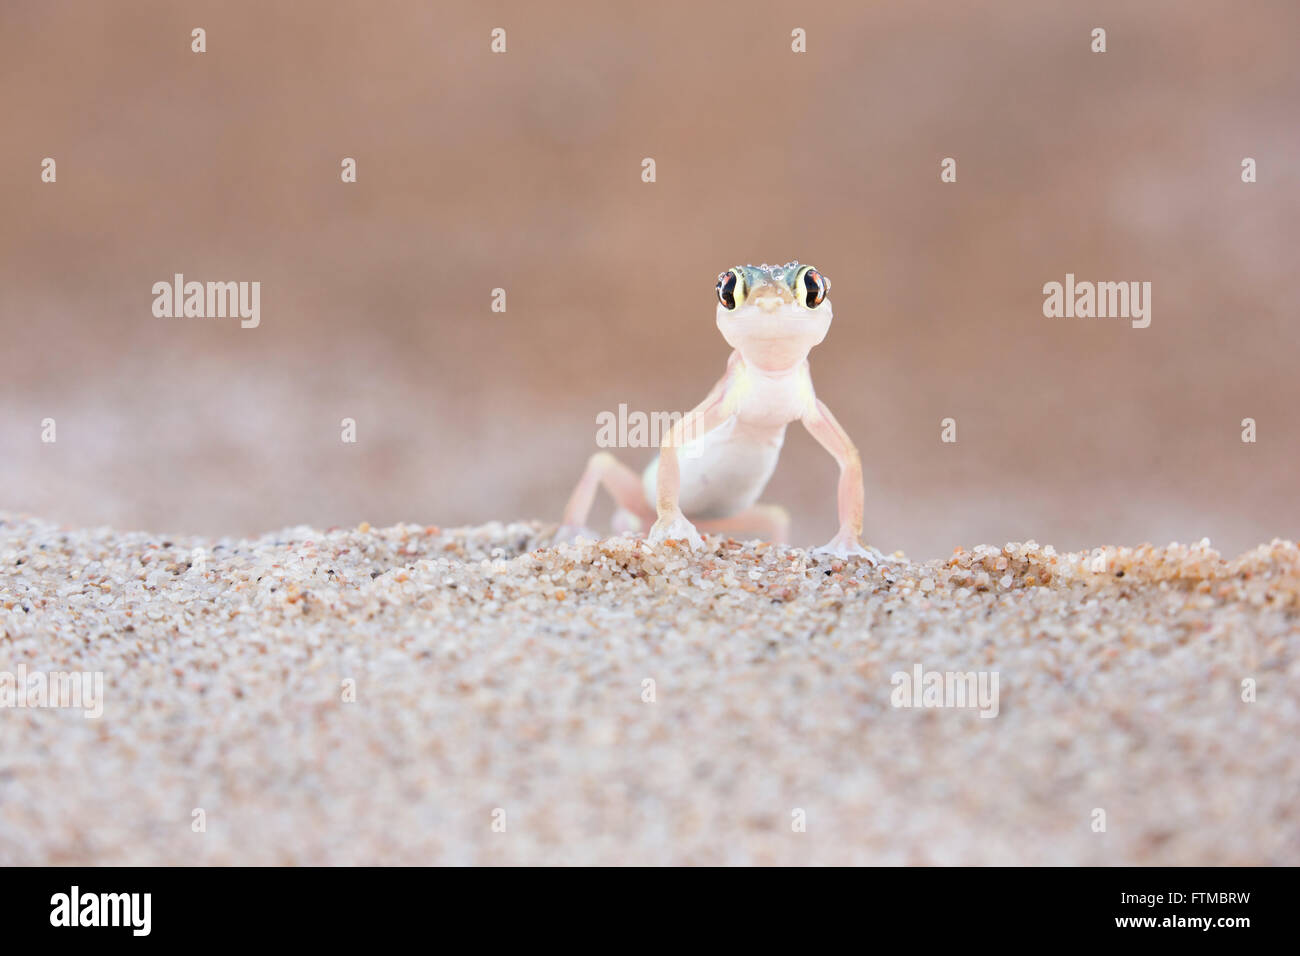 Palmato Gecko standing on top of a sand dune and looking at the camera Stock Photo